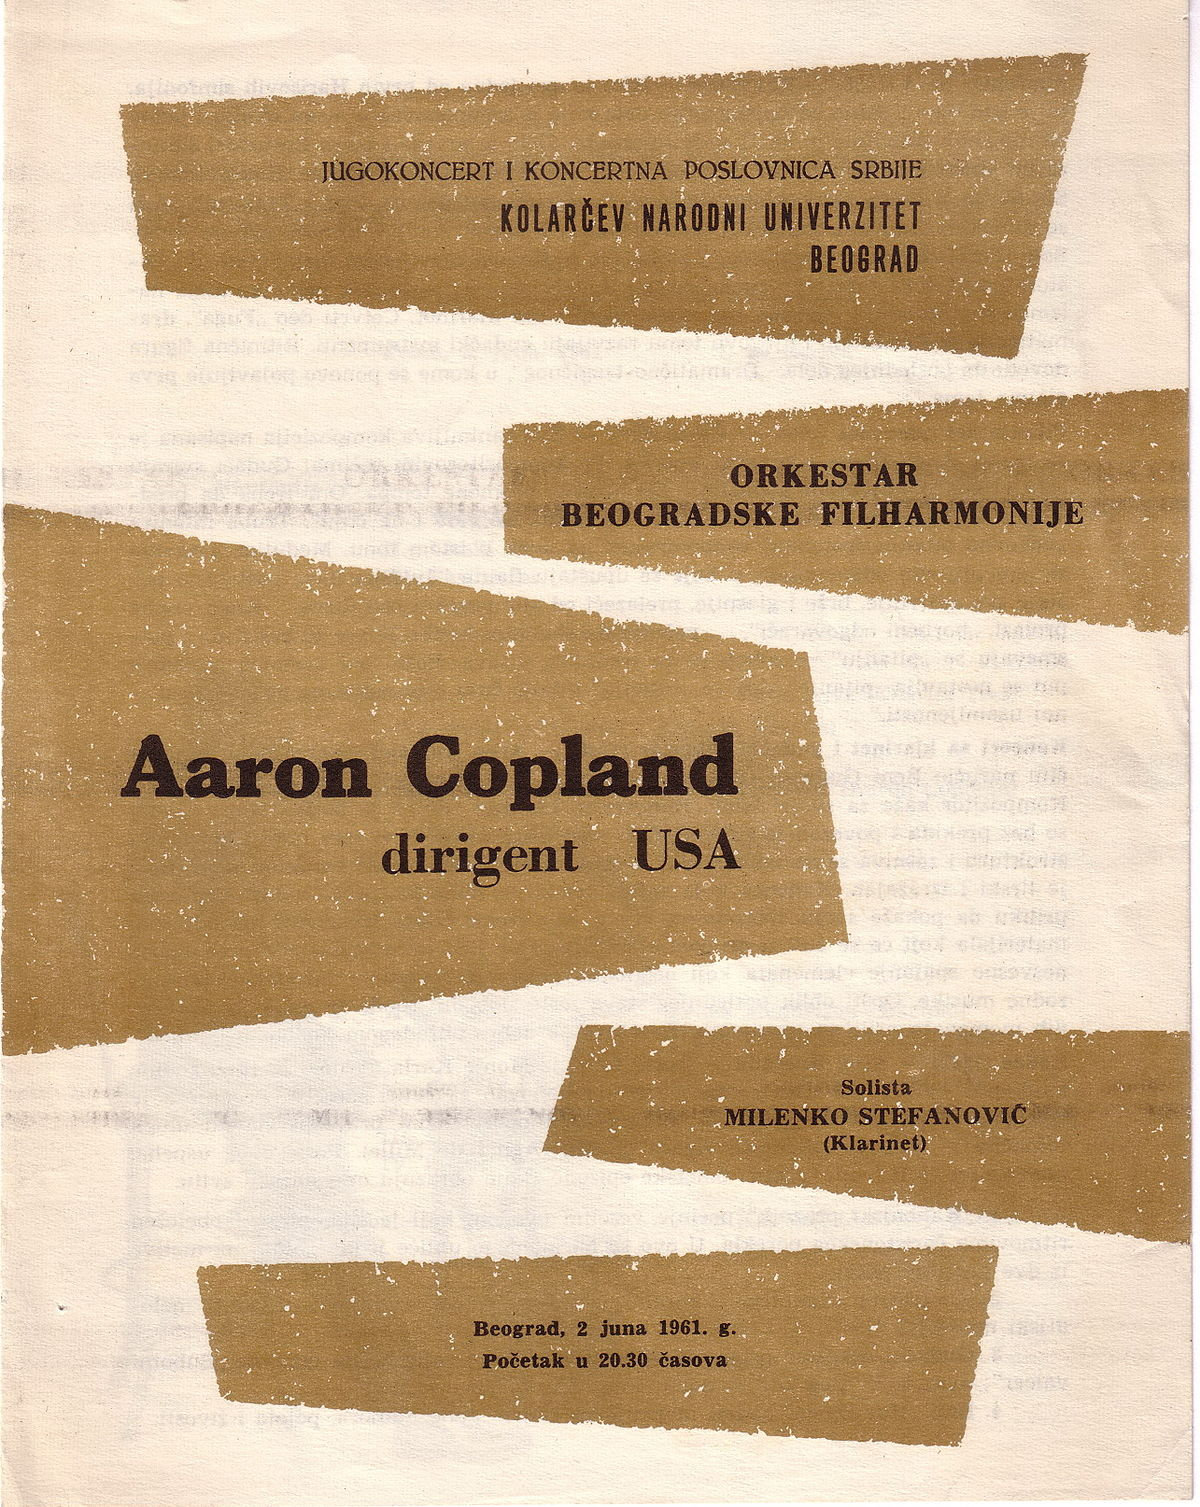 aaron copland essay Aaron copland was the embodiment of what a composer can hope to become copland was very much in touch not only with himself and his feelings, but with the audience he intended to reach.